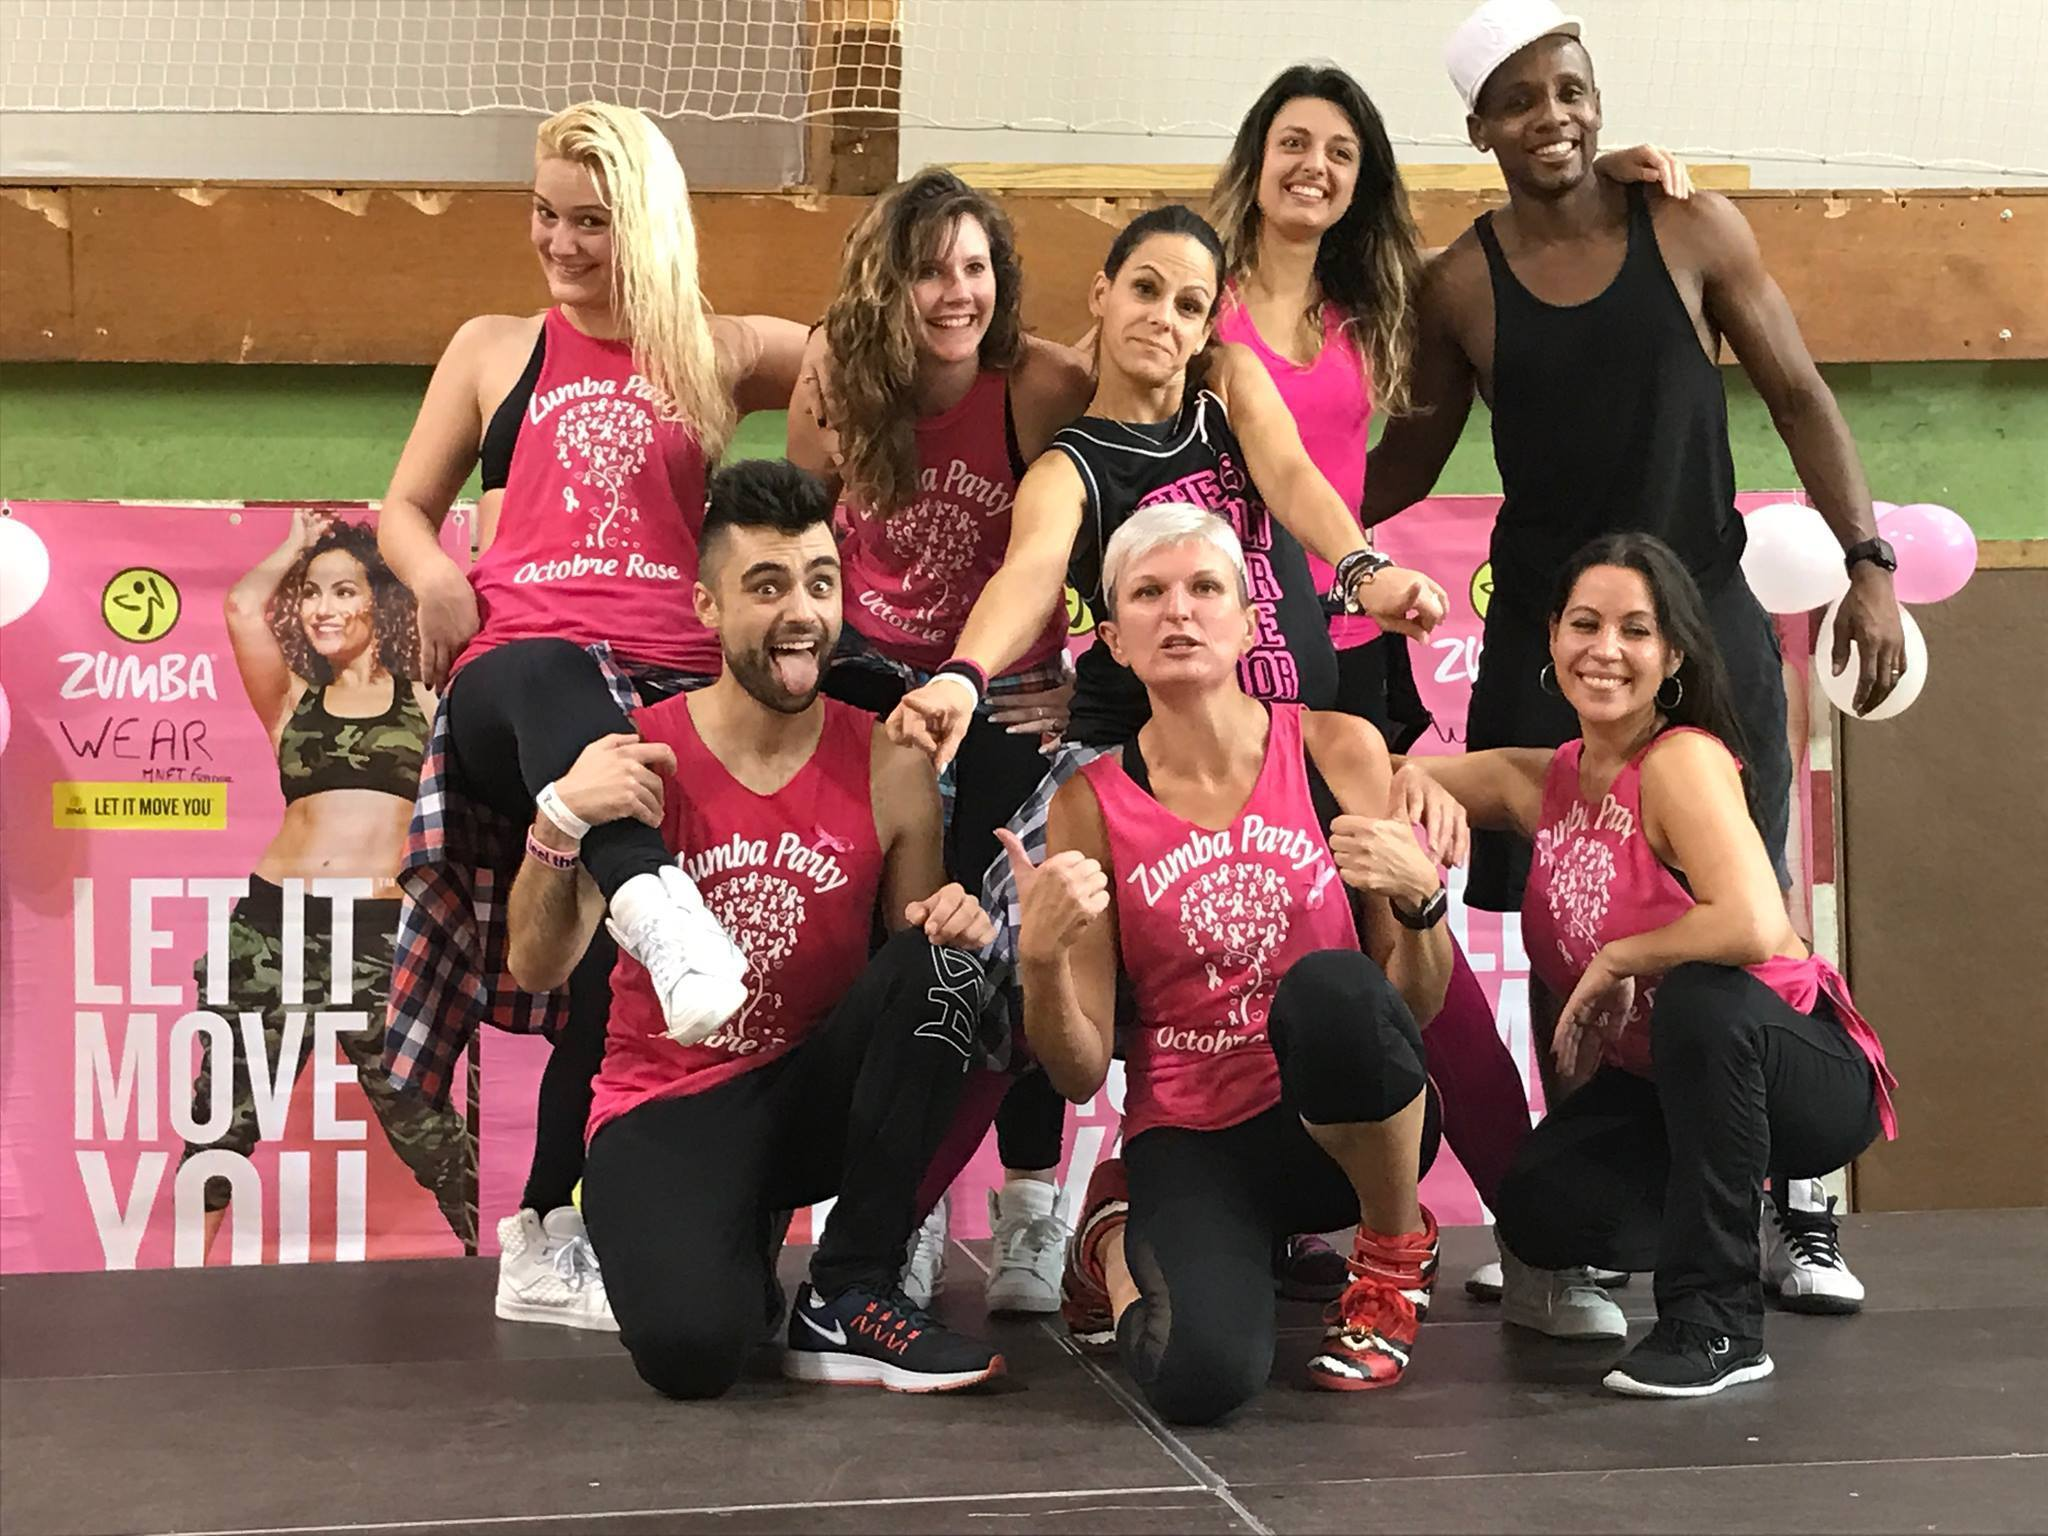 Zumba Pink Party pour Octobre Rose